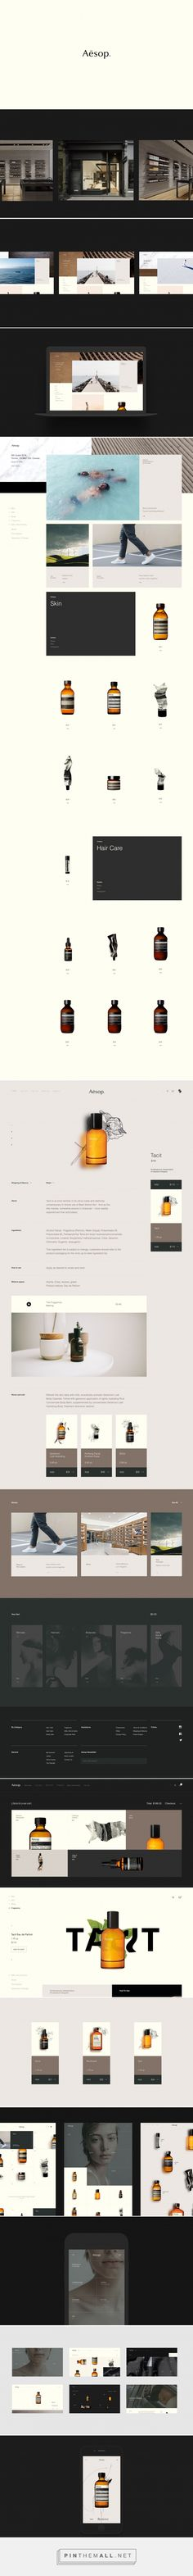 R—S – Design 2008-2018... - a grouped images picture - Pin Them All